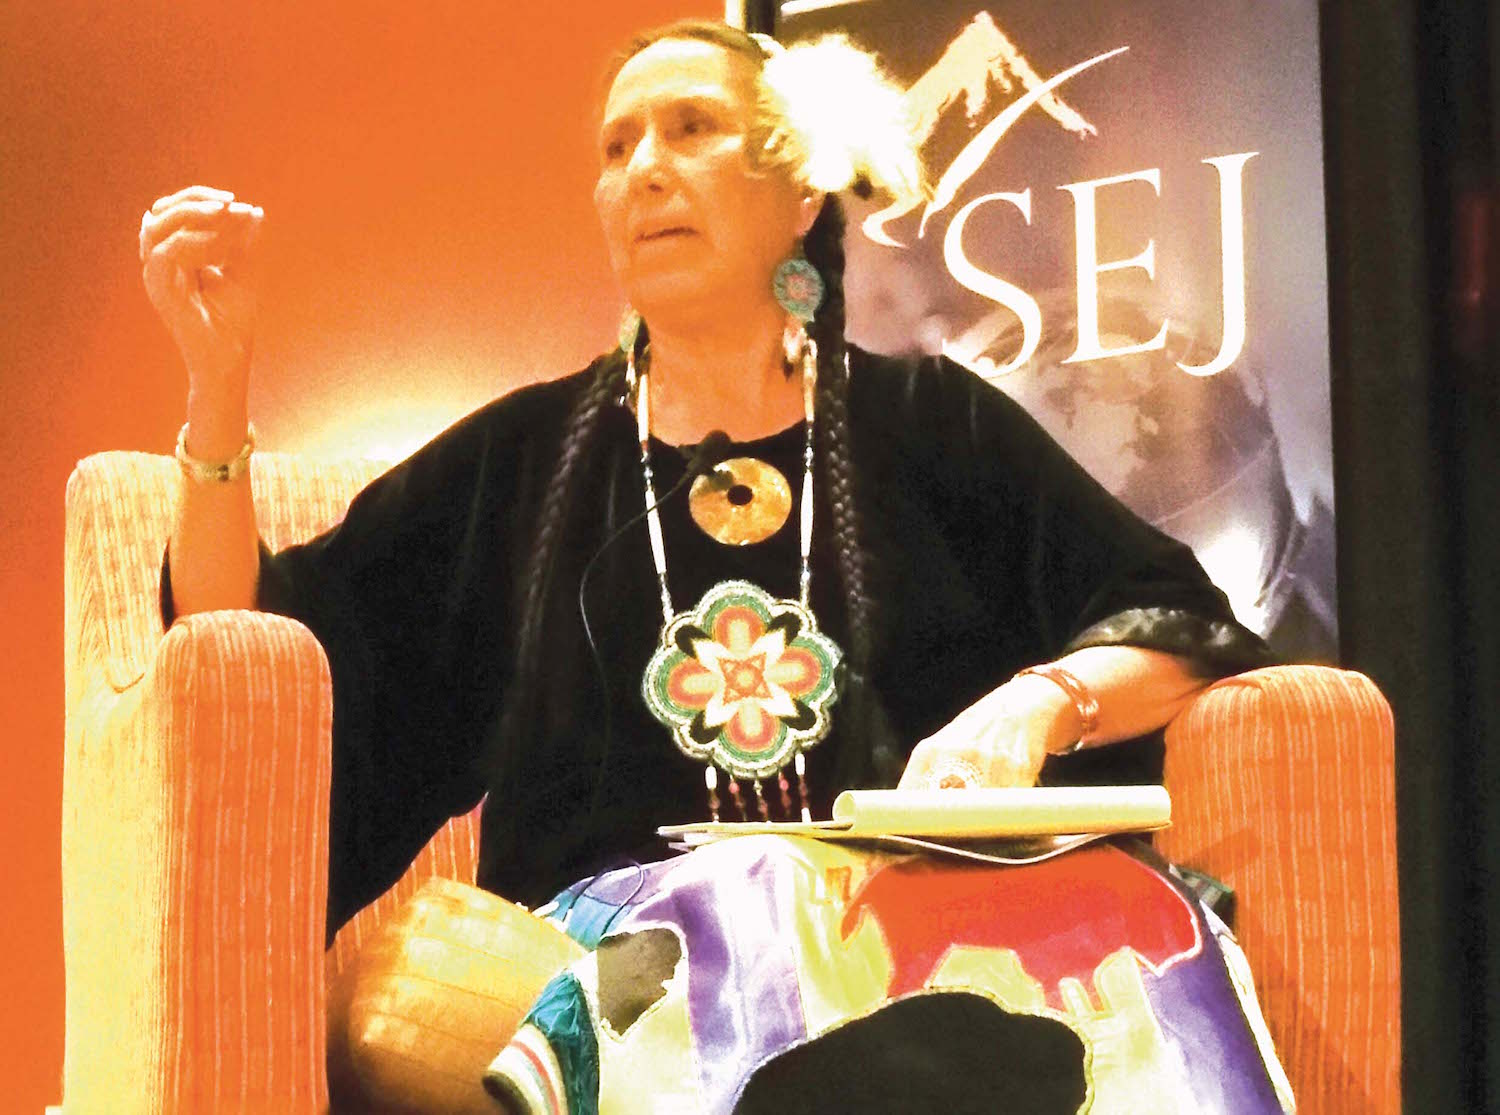 Native Sun News: Indian journalists take center stage at conference